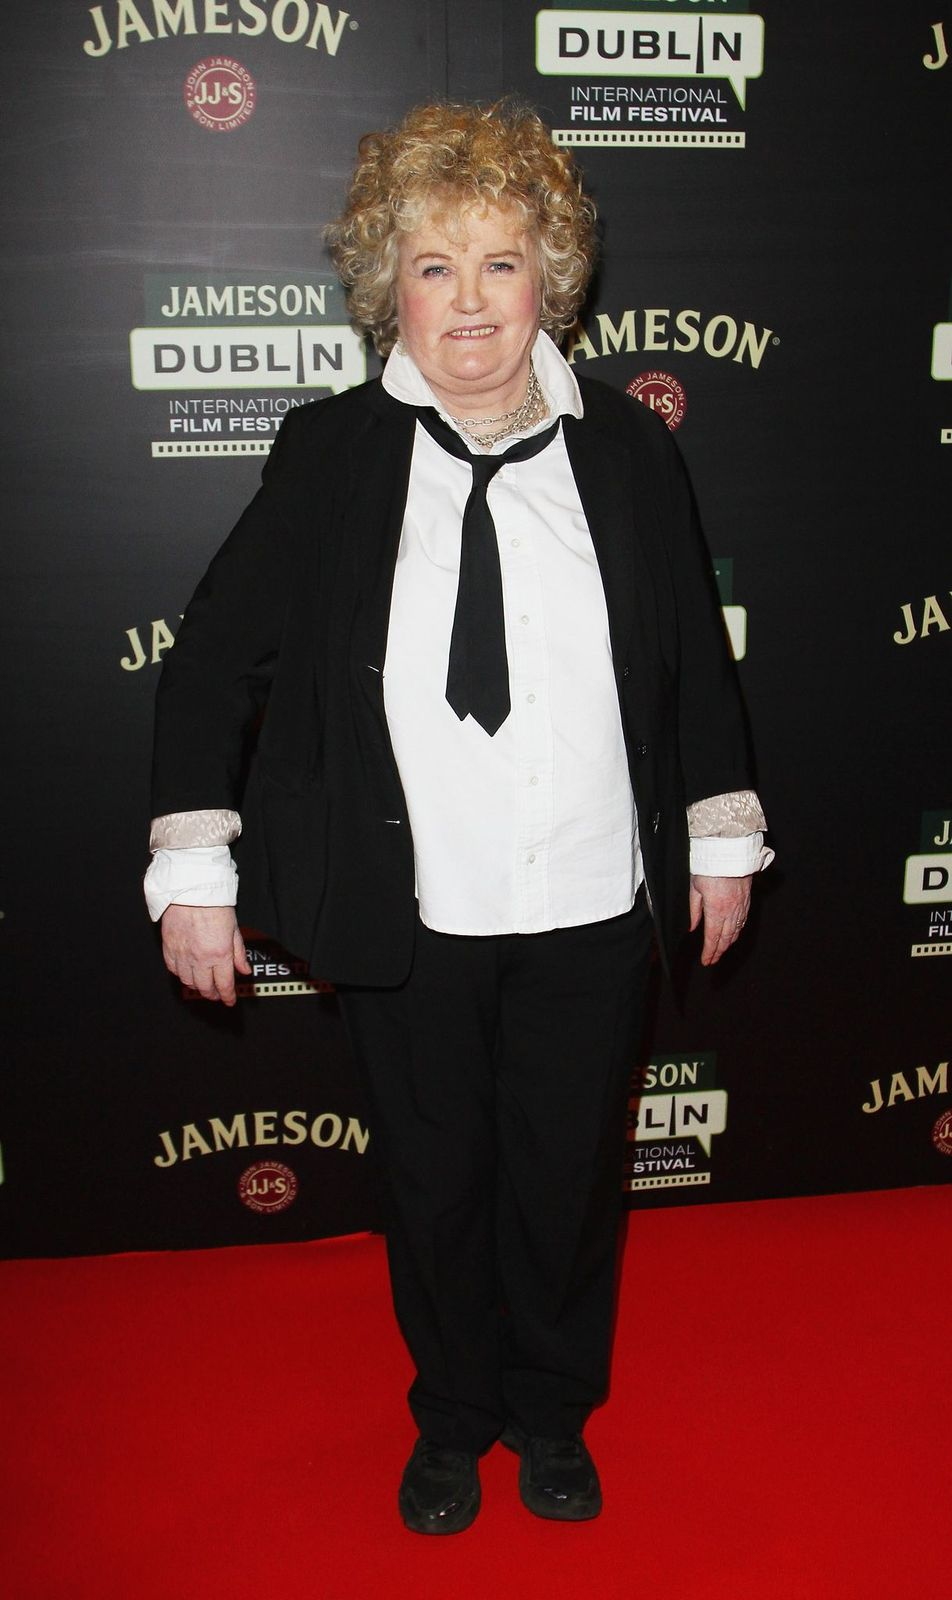 """Brenda Fricker attends a screening of """"A Long Way From Home"""" at the Jameson Dublin International Film Festival at Savoy on February 15, 2014 in Dublin, Ireland. 